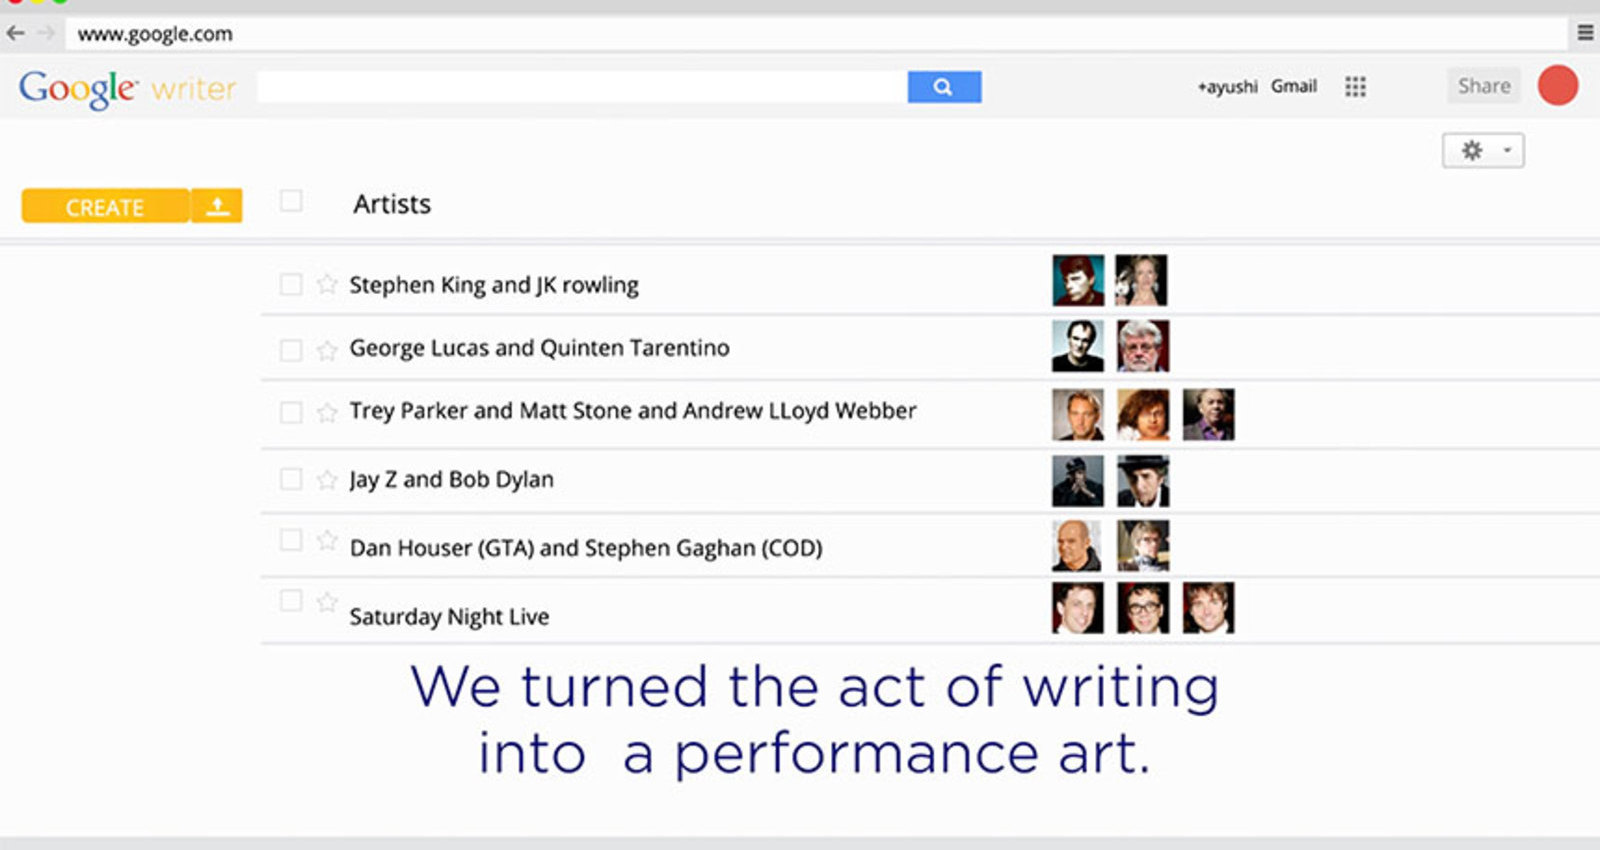 GoogleWriter